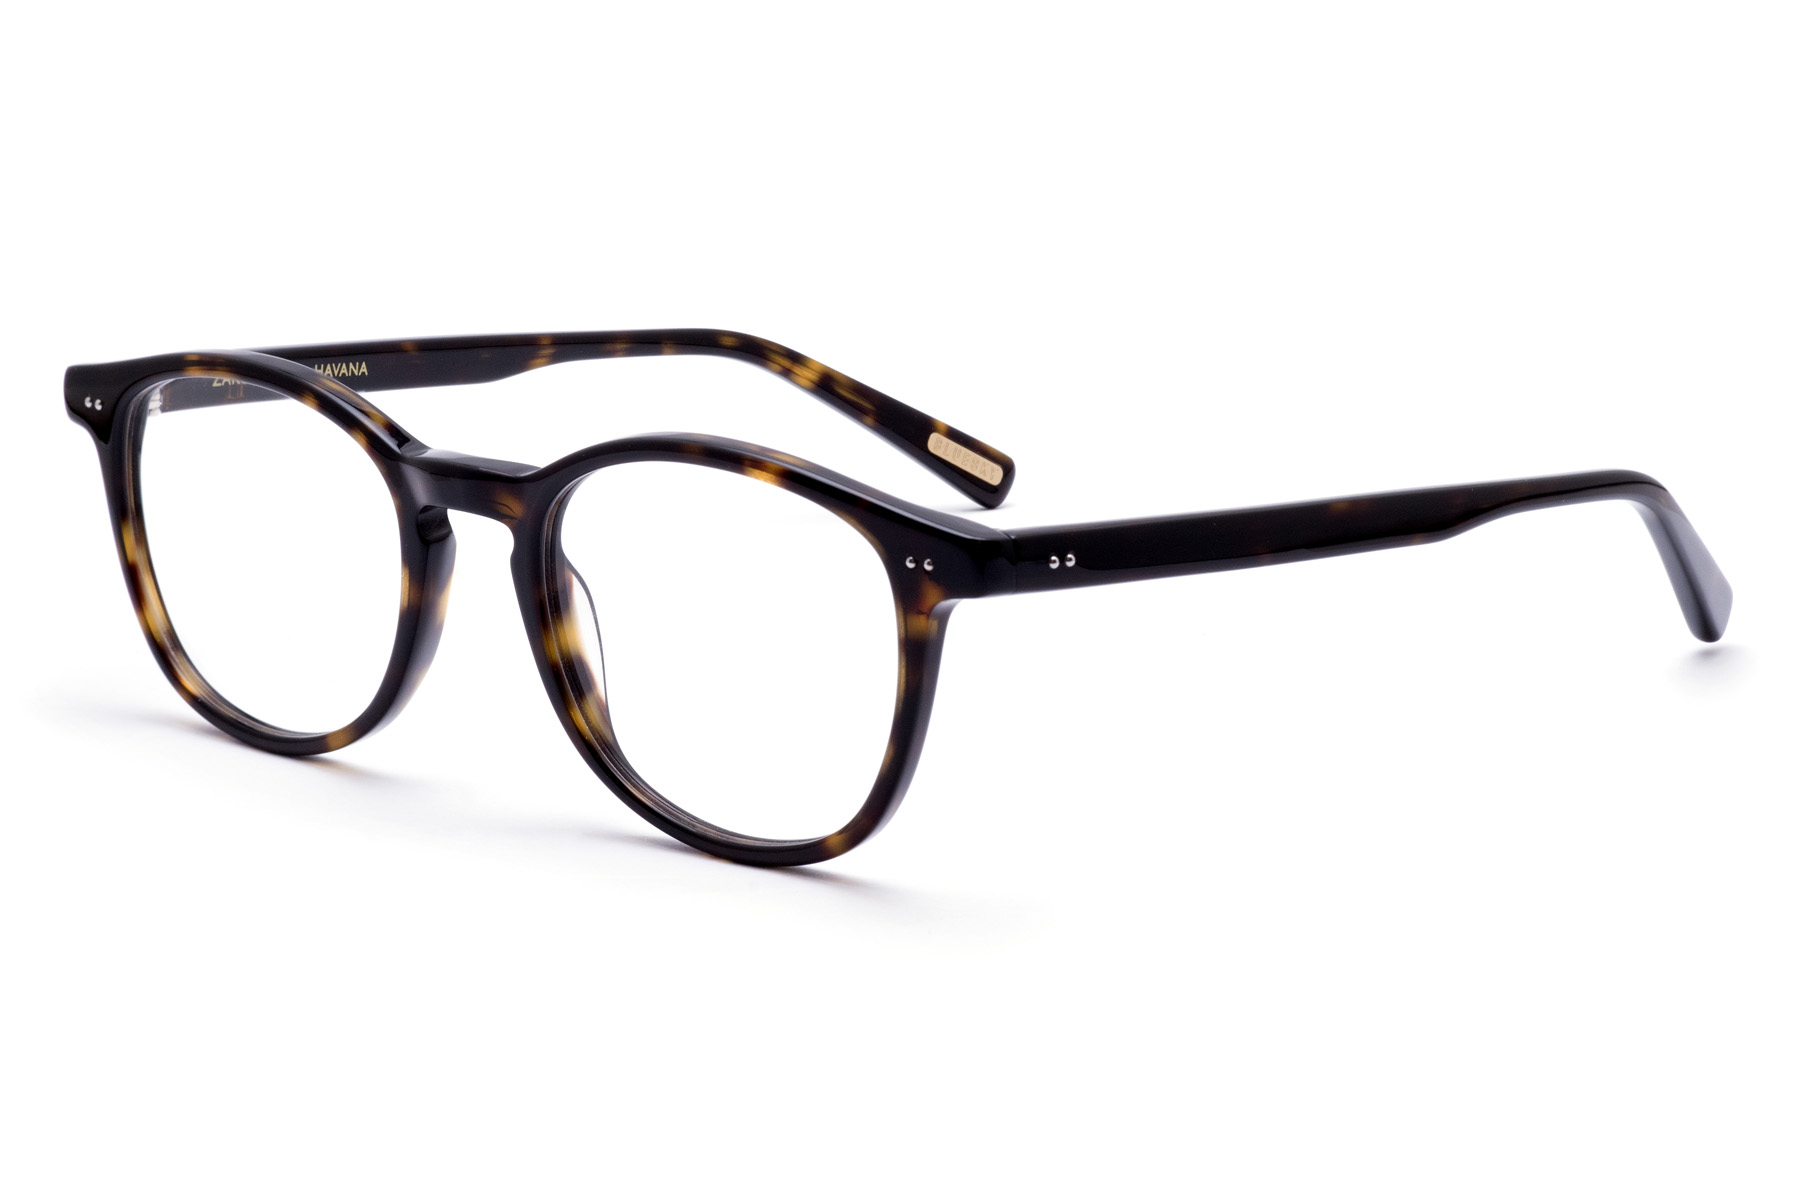 Prescription Glasses Bluesky Zakopane Havana Unisex 2020